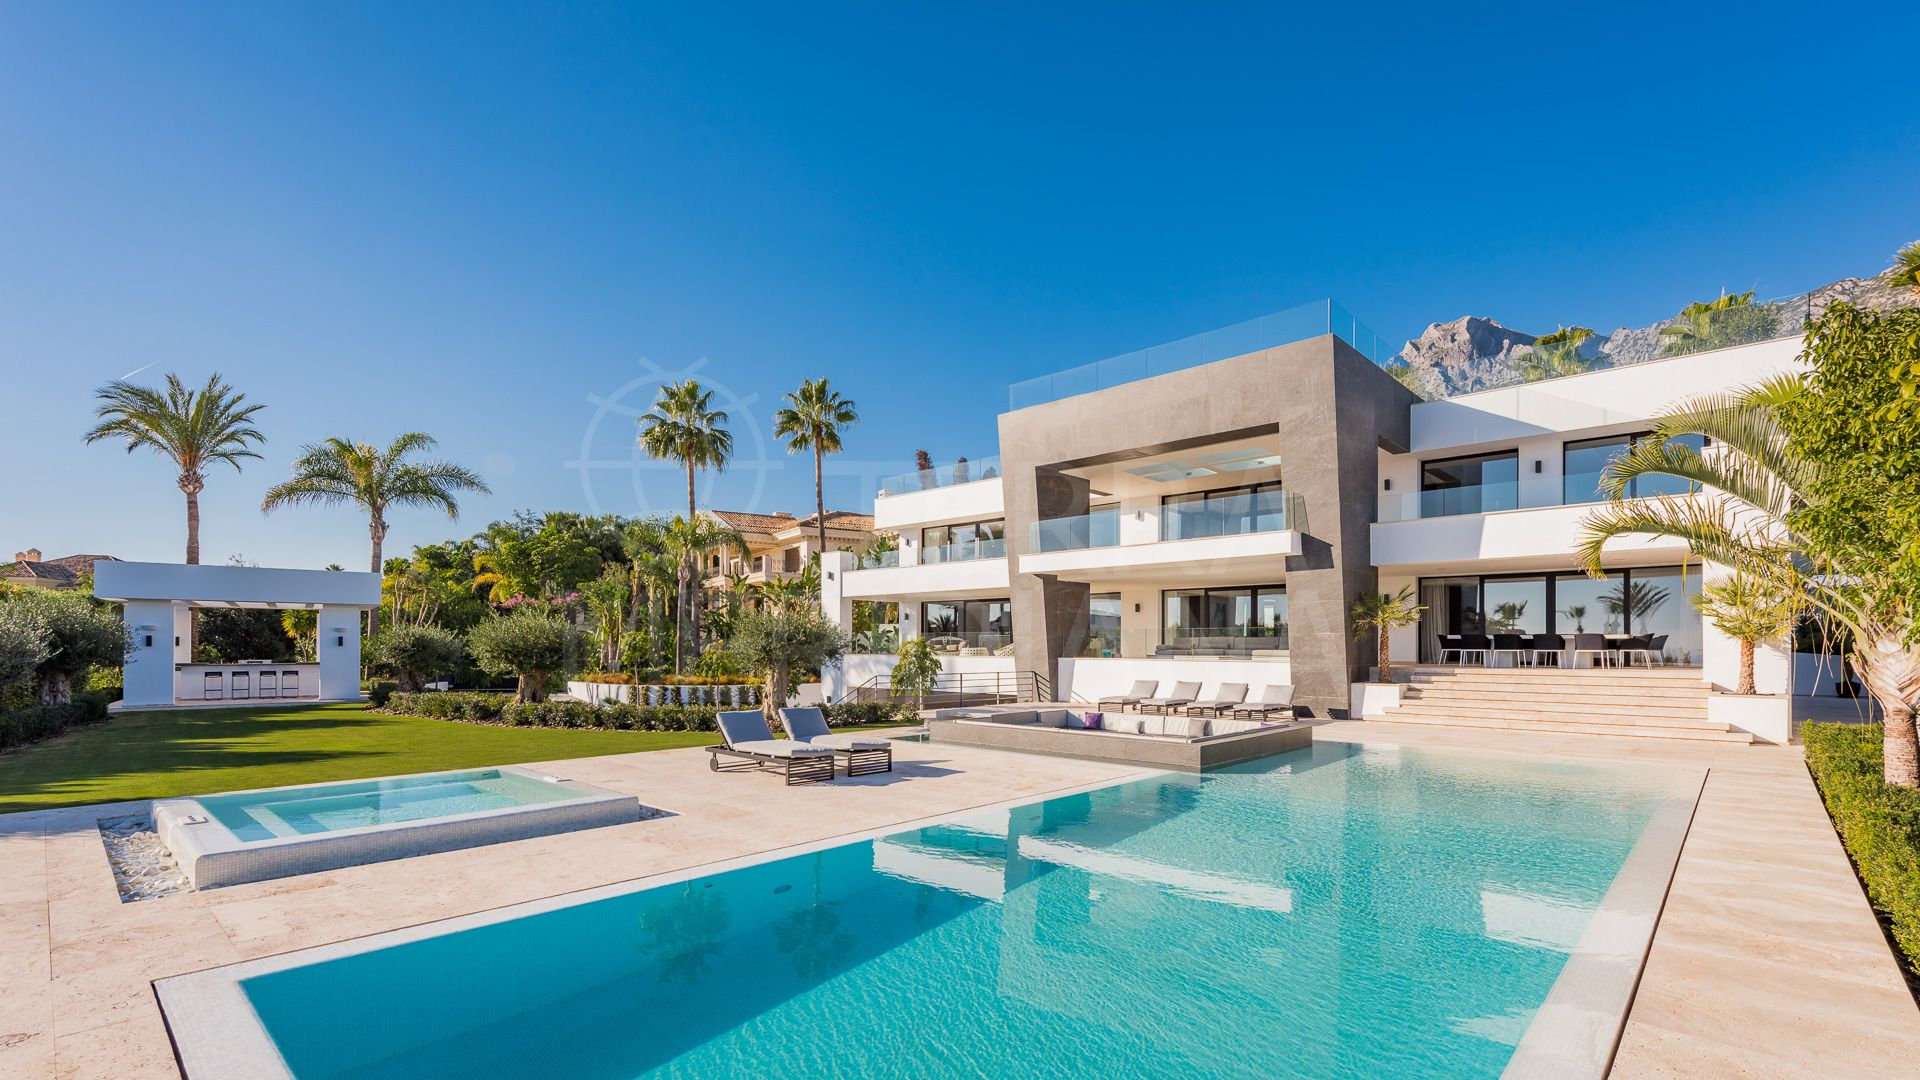 Stunning modern villa for sale in Sierra Blanca, Marbella Golden Mile